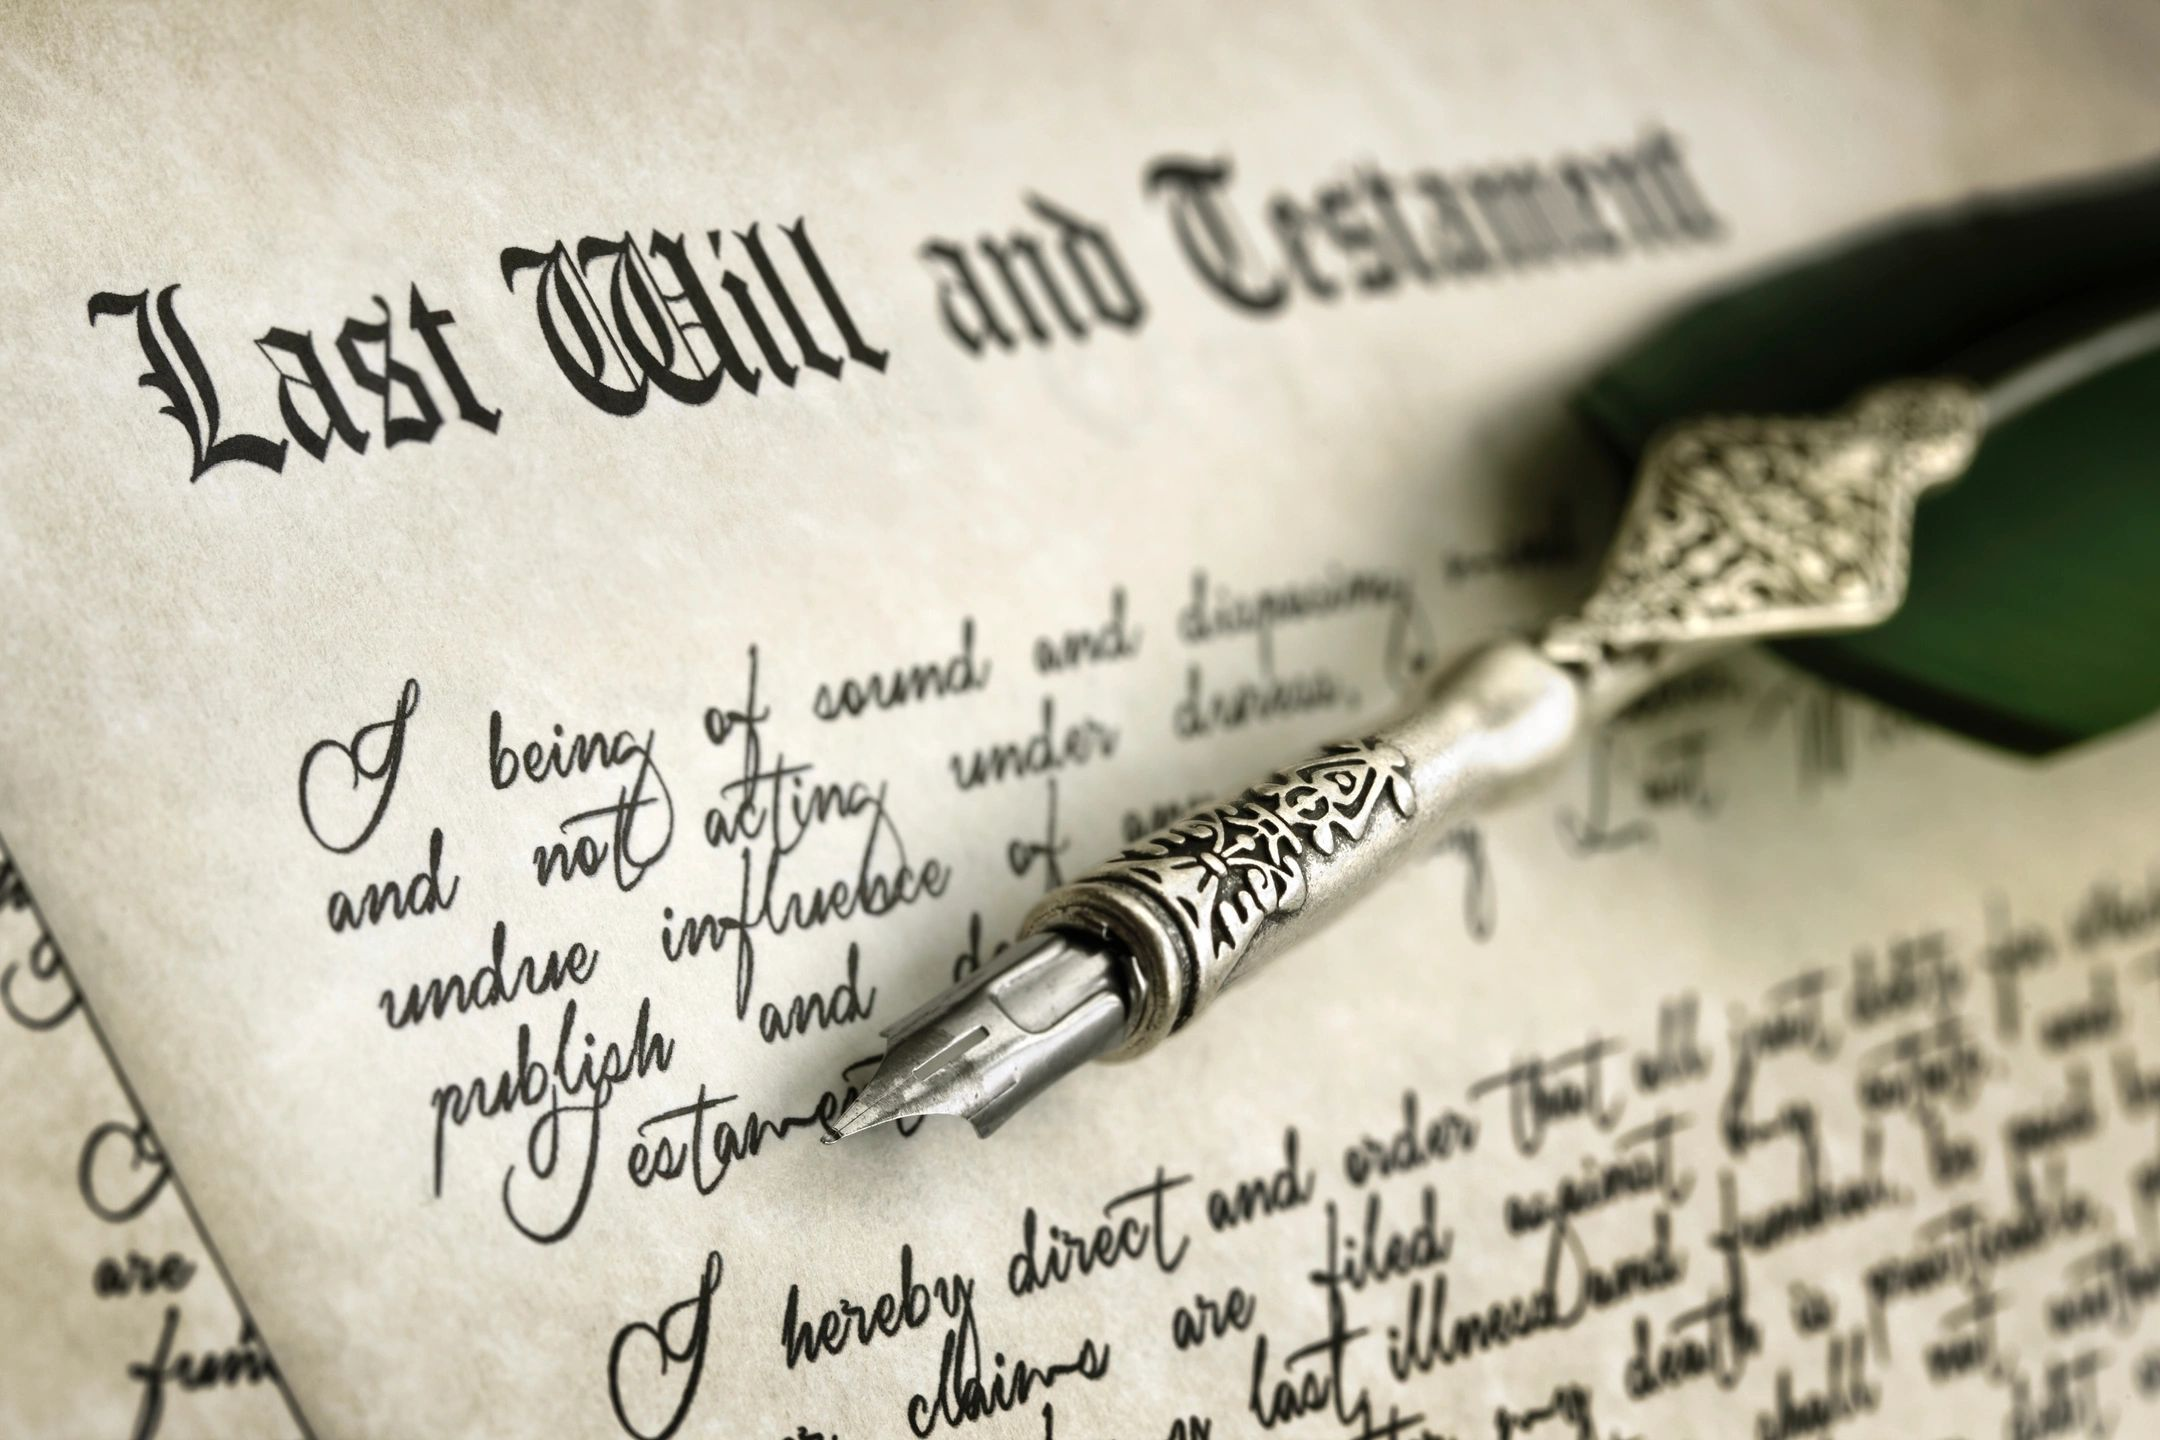 Mobile Notary Wills Trusts Power of Attorney real estate Notarize Notary Public Oaths Affirmation